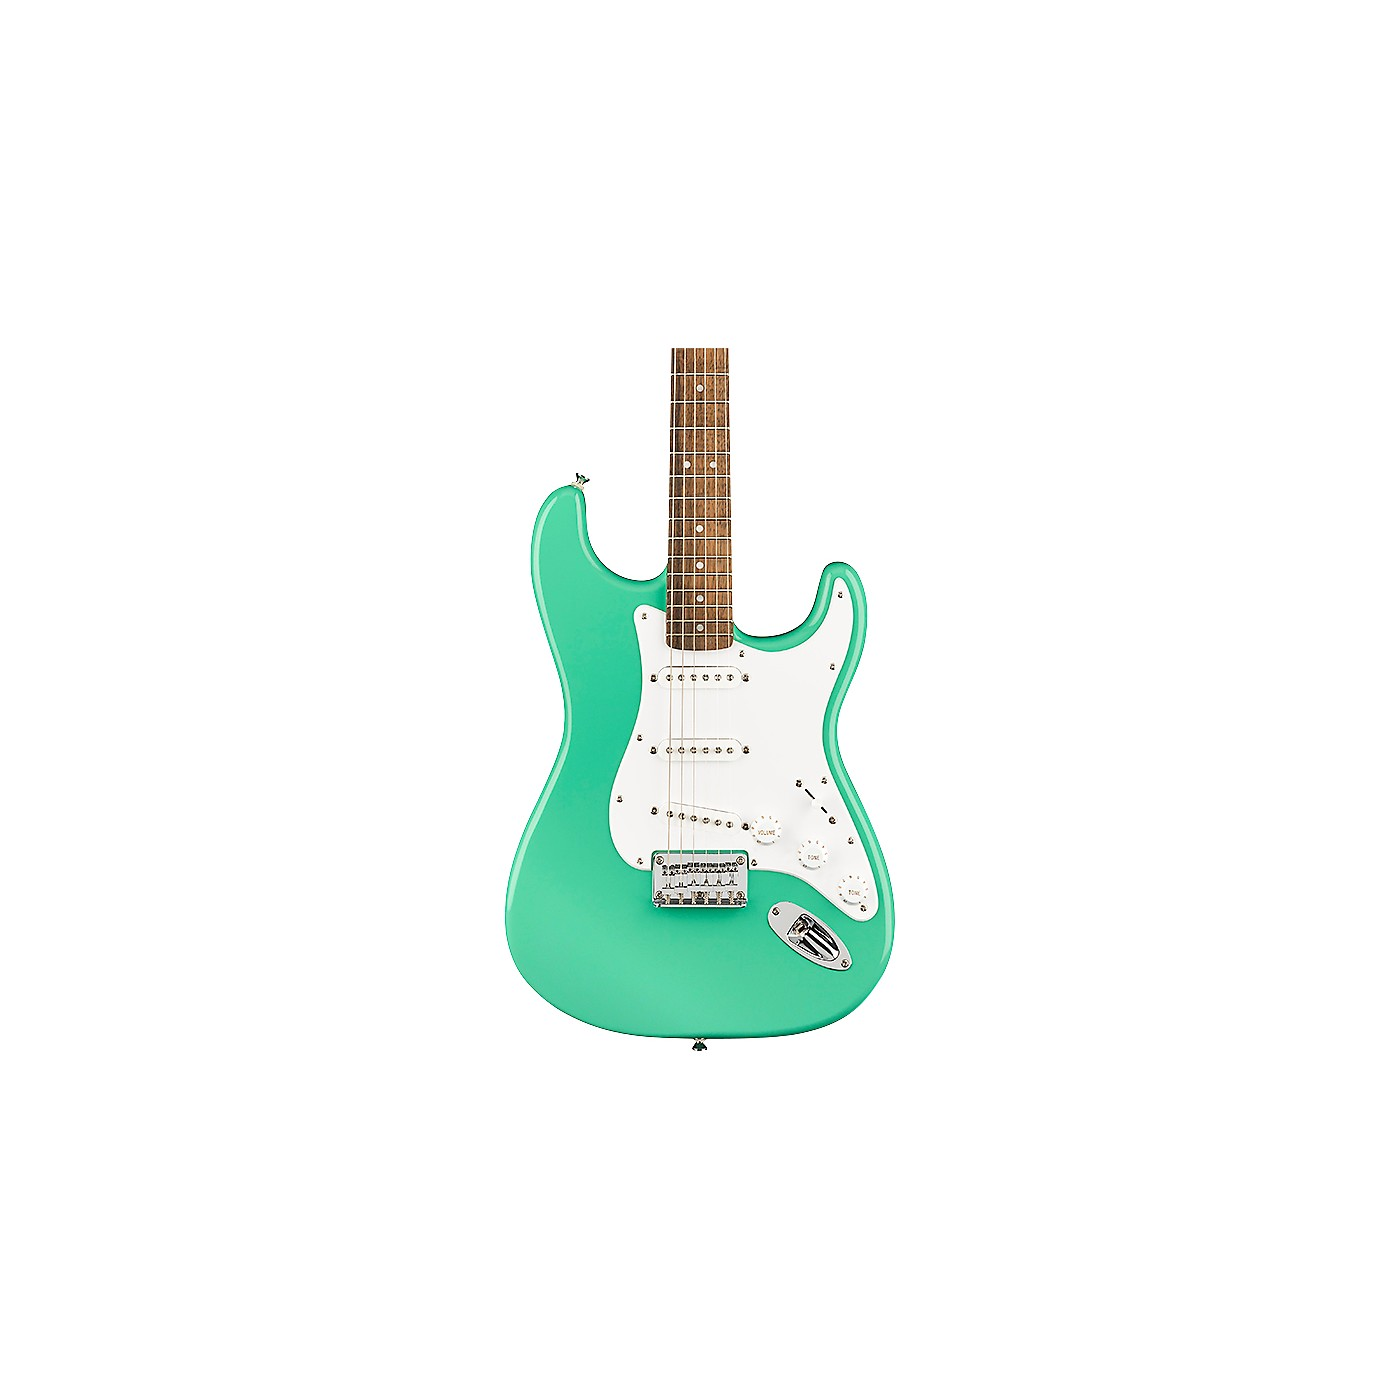 Squier Bullet Stratocaster Hardtail Limited Edition Electric Guitar thumbnail